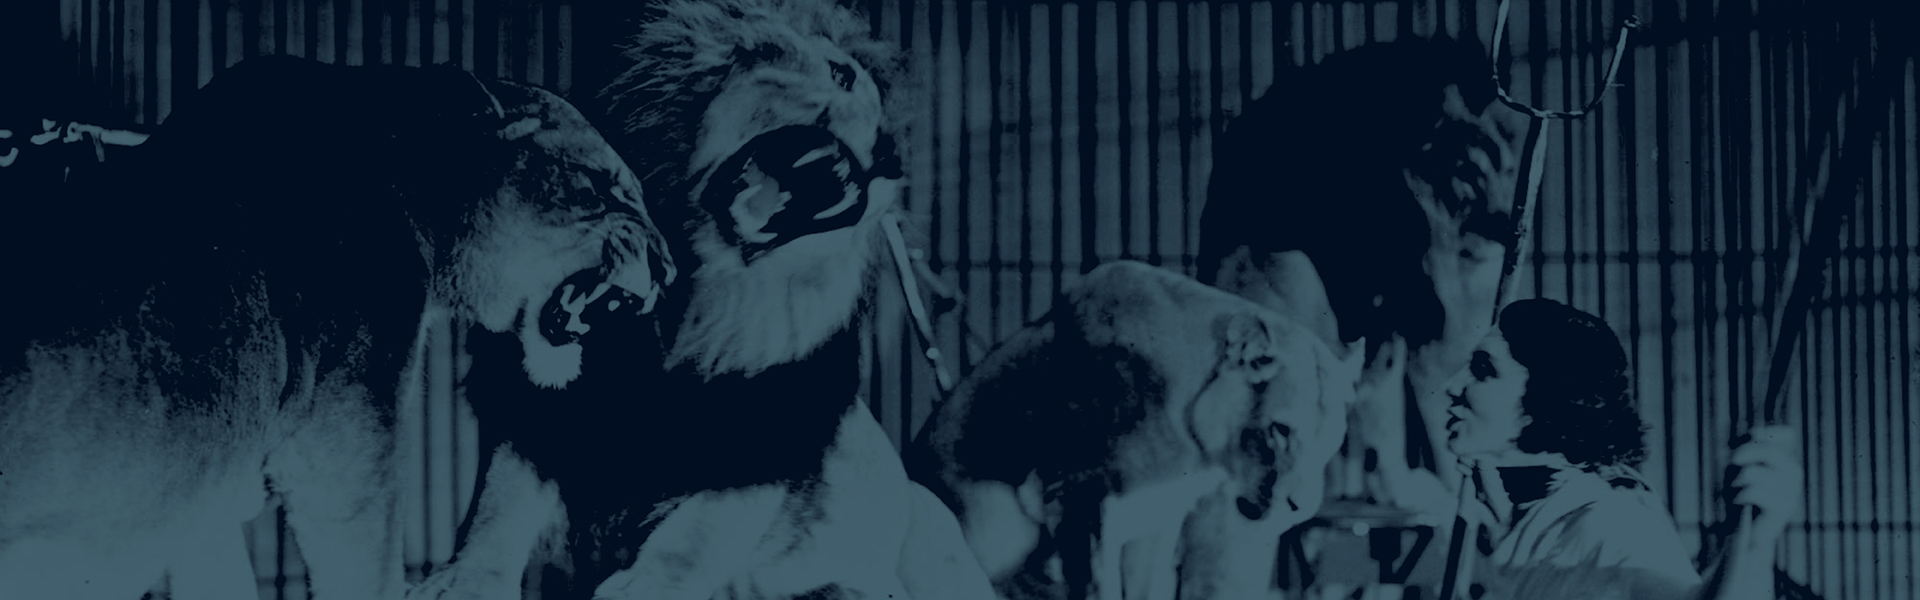 Strong digital vintage circus image of lions